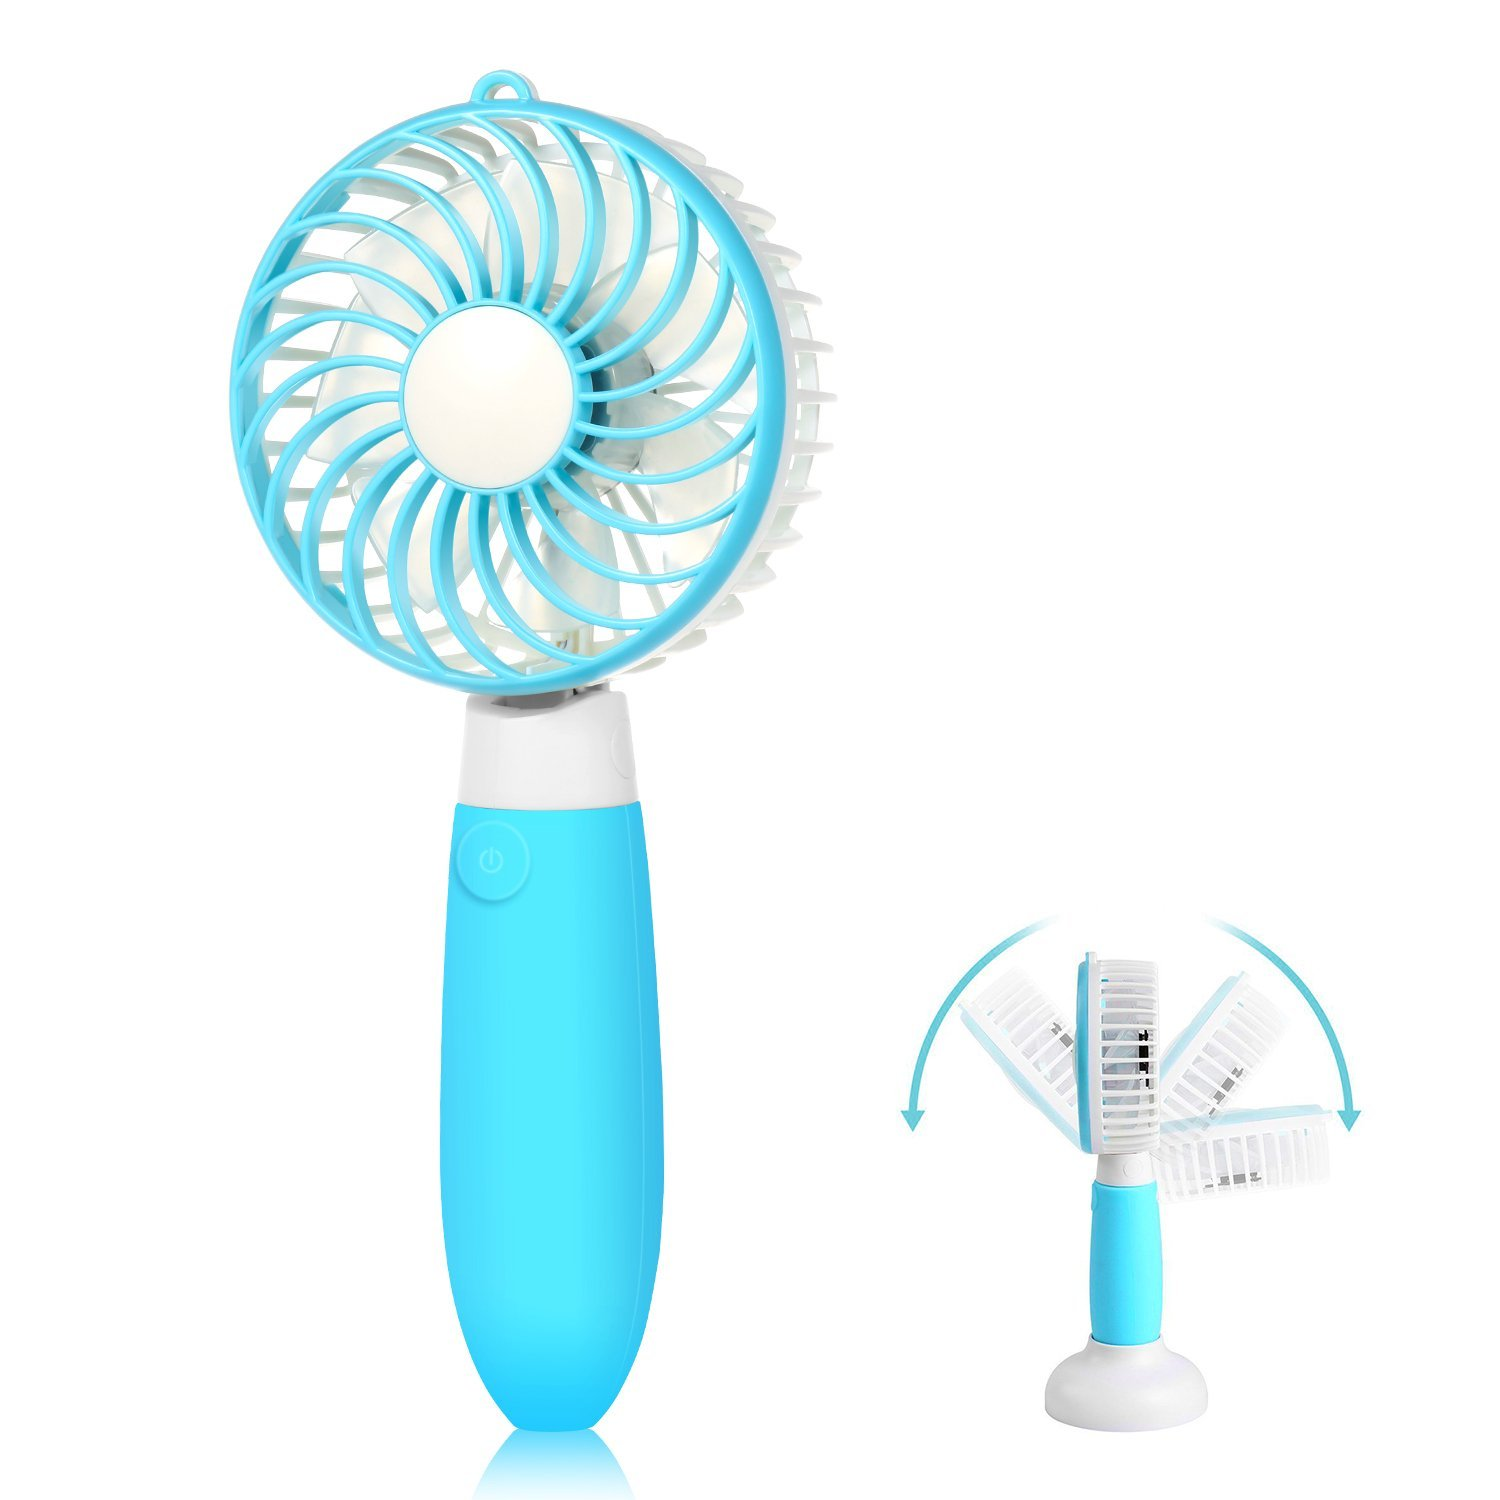 Mini Air Conditioner Fan Usb Rechargeable Handheld Cooling Fan 3 Speeds With Lithium Battery For Office Travelling High-qualit A Great Variety Of Goods Fans